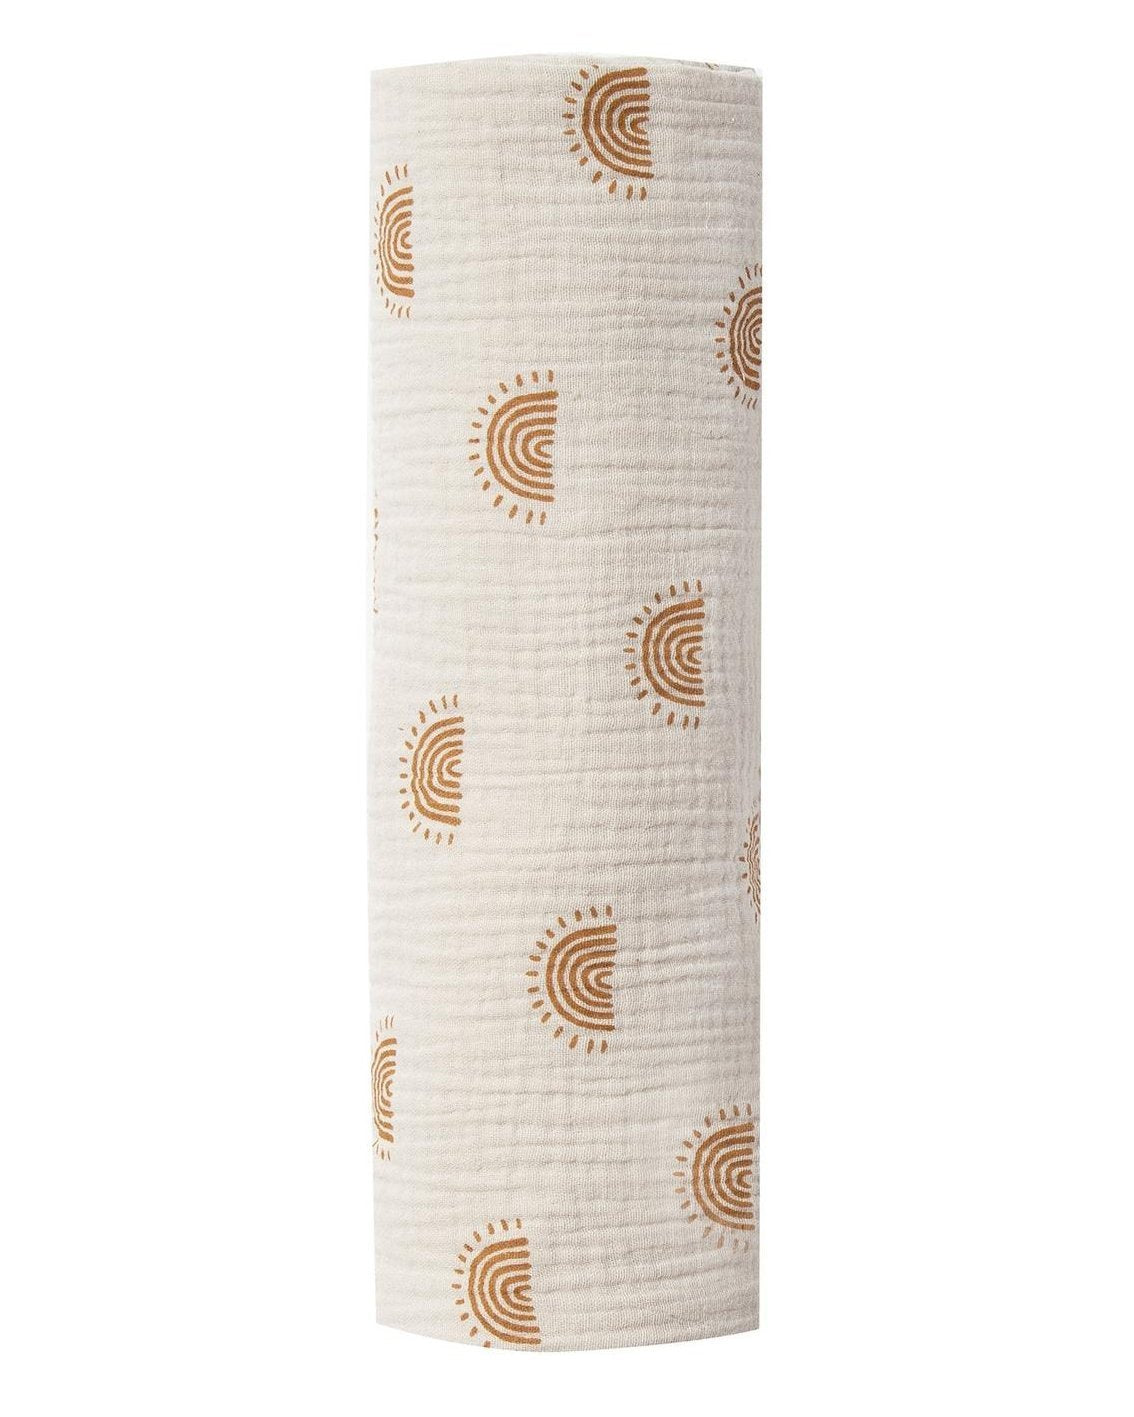 Little rylee + cru baby accessories rainbow suns swaddle in natural